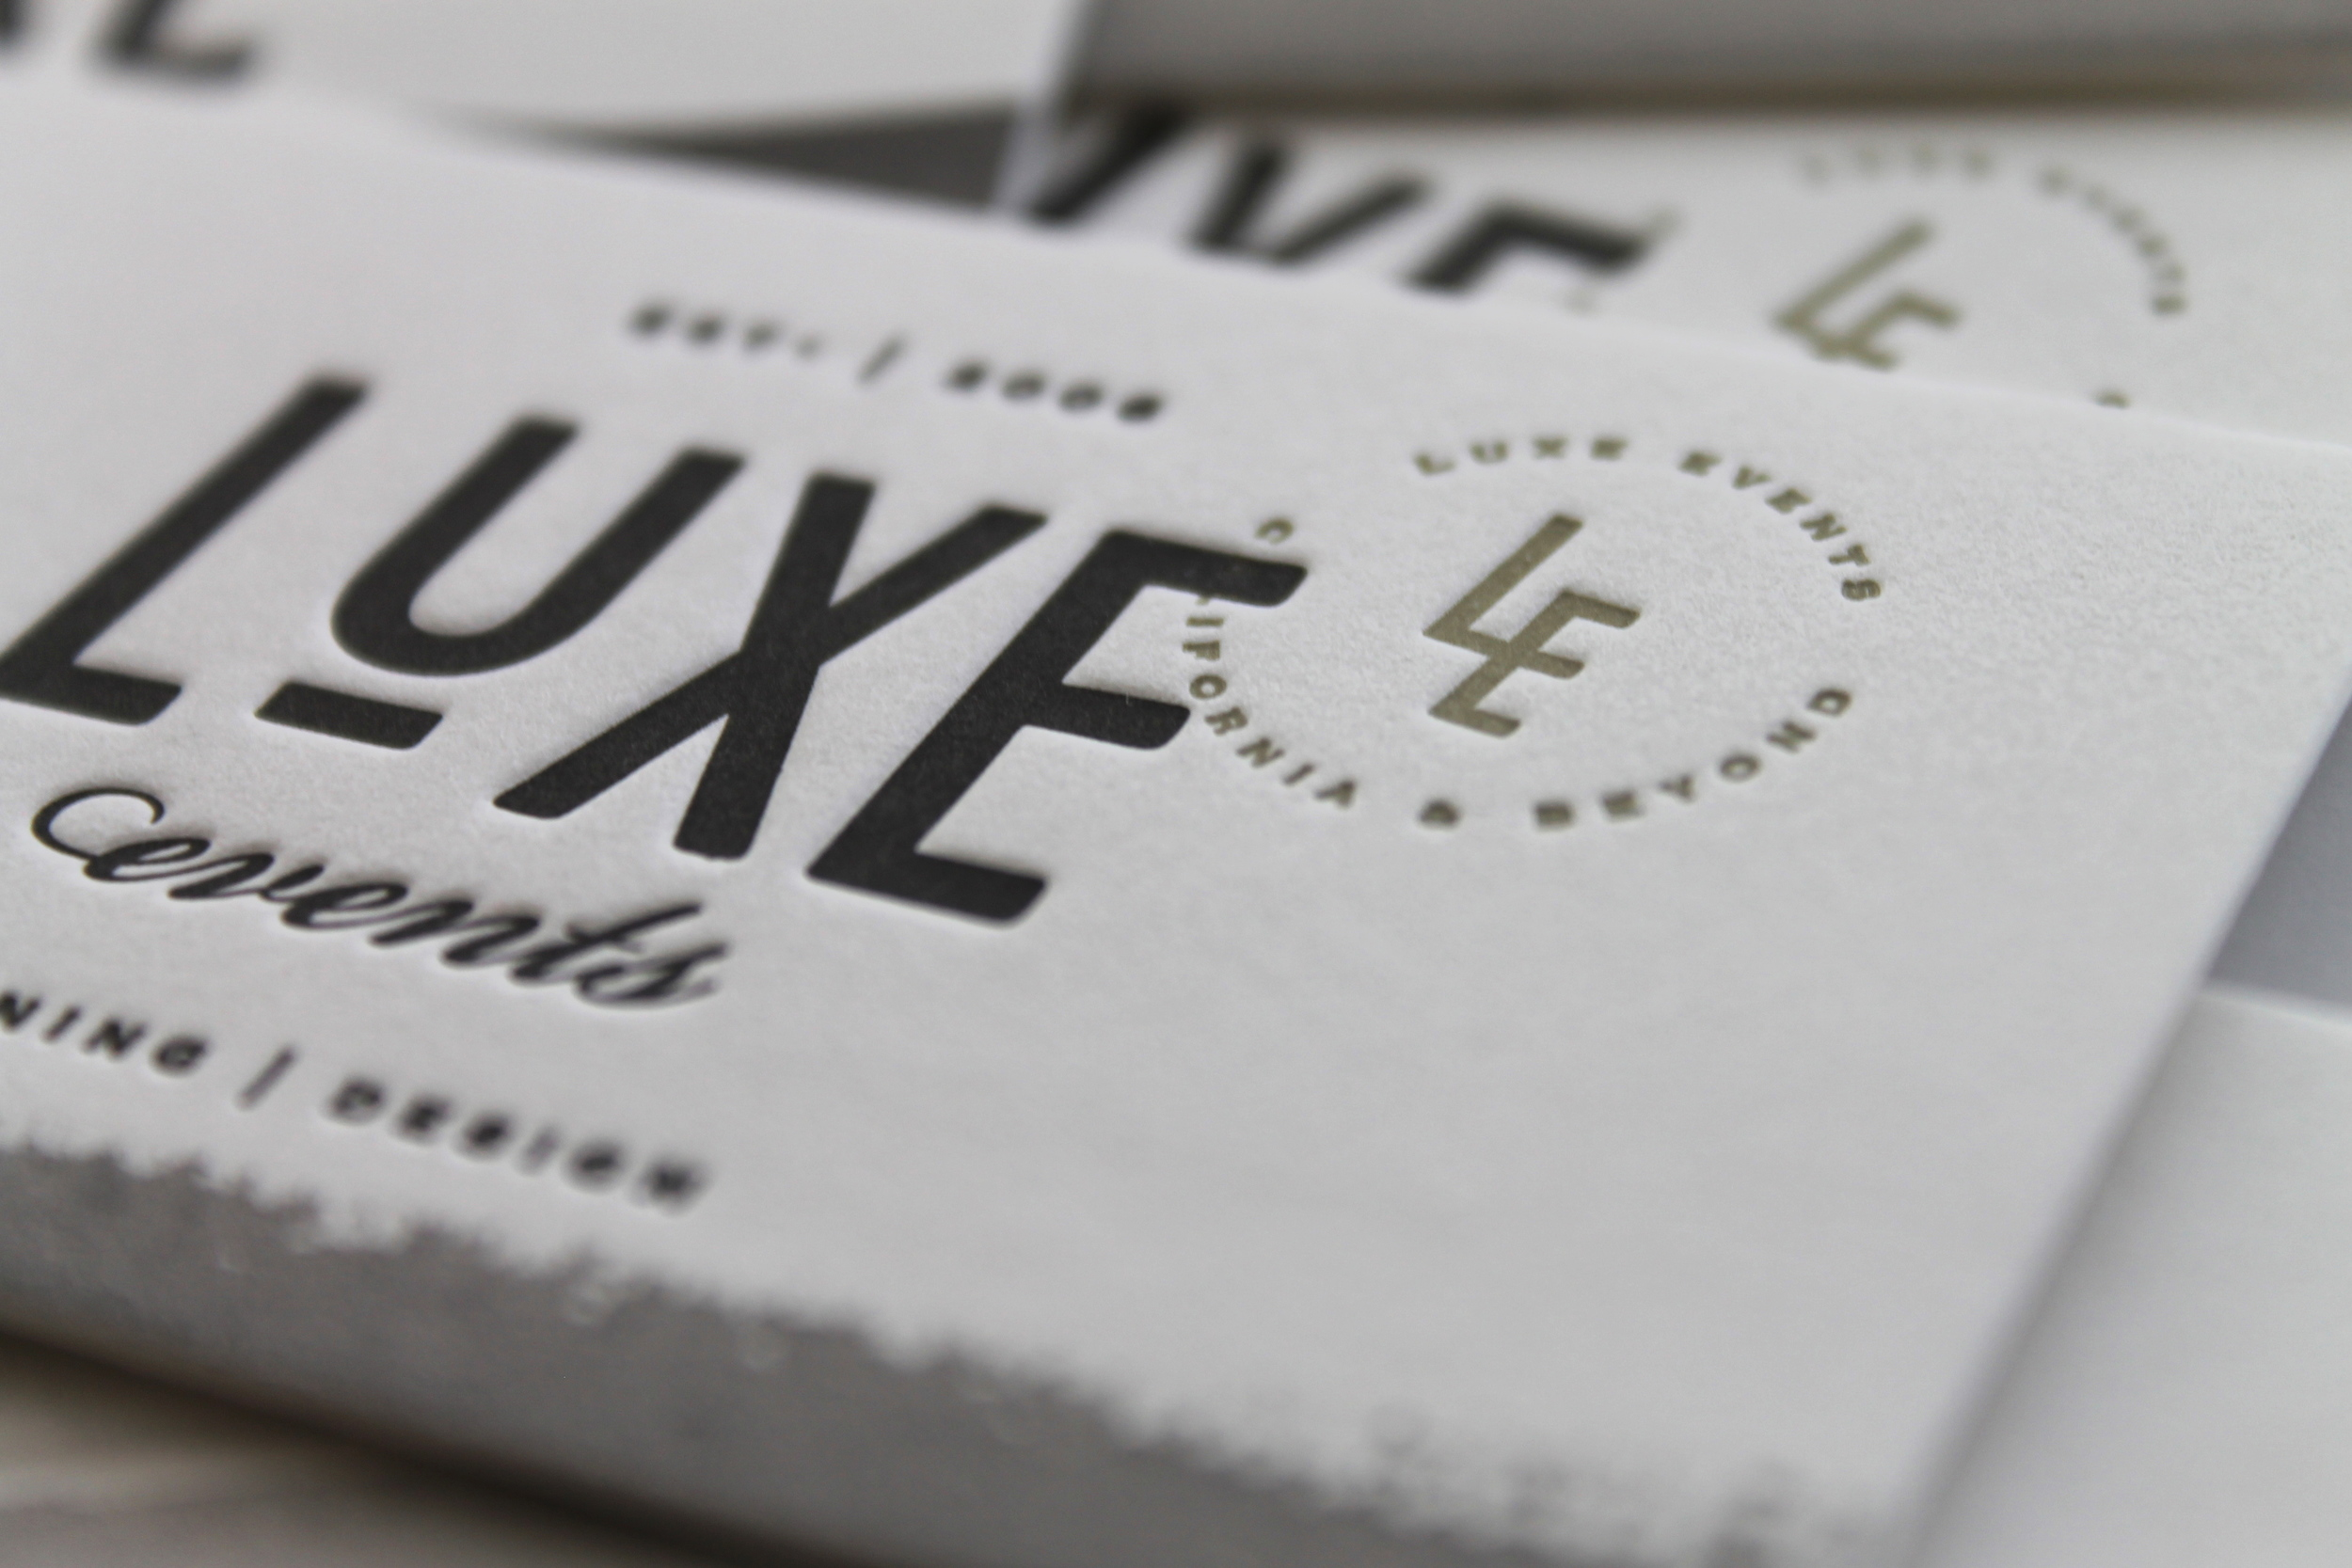 Swell Press x Salted Ink X Luxe Events Cards 5.JPG